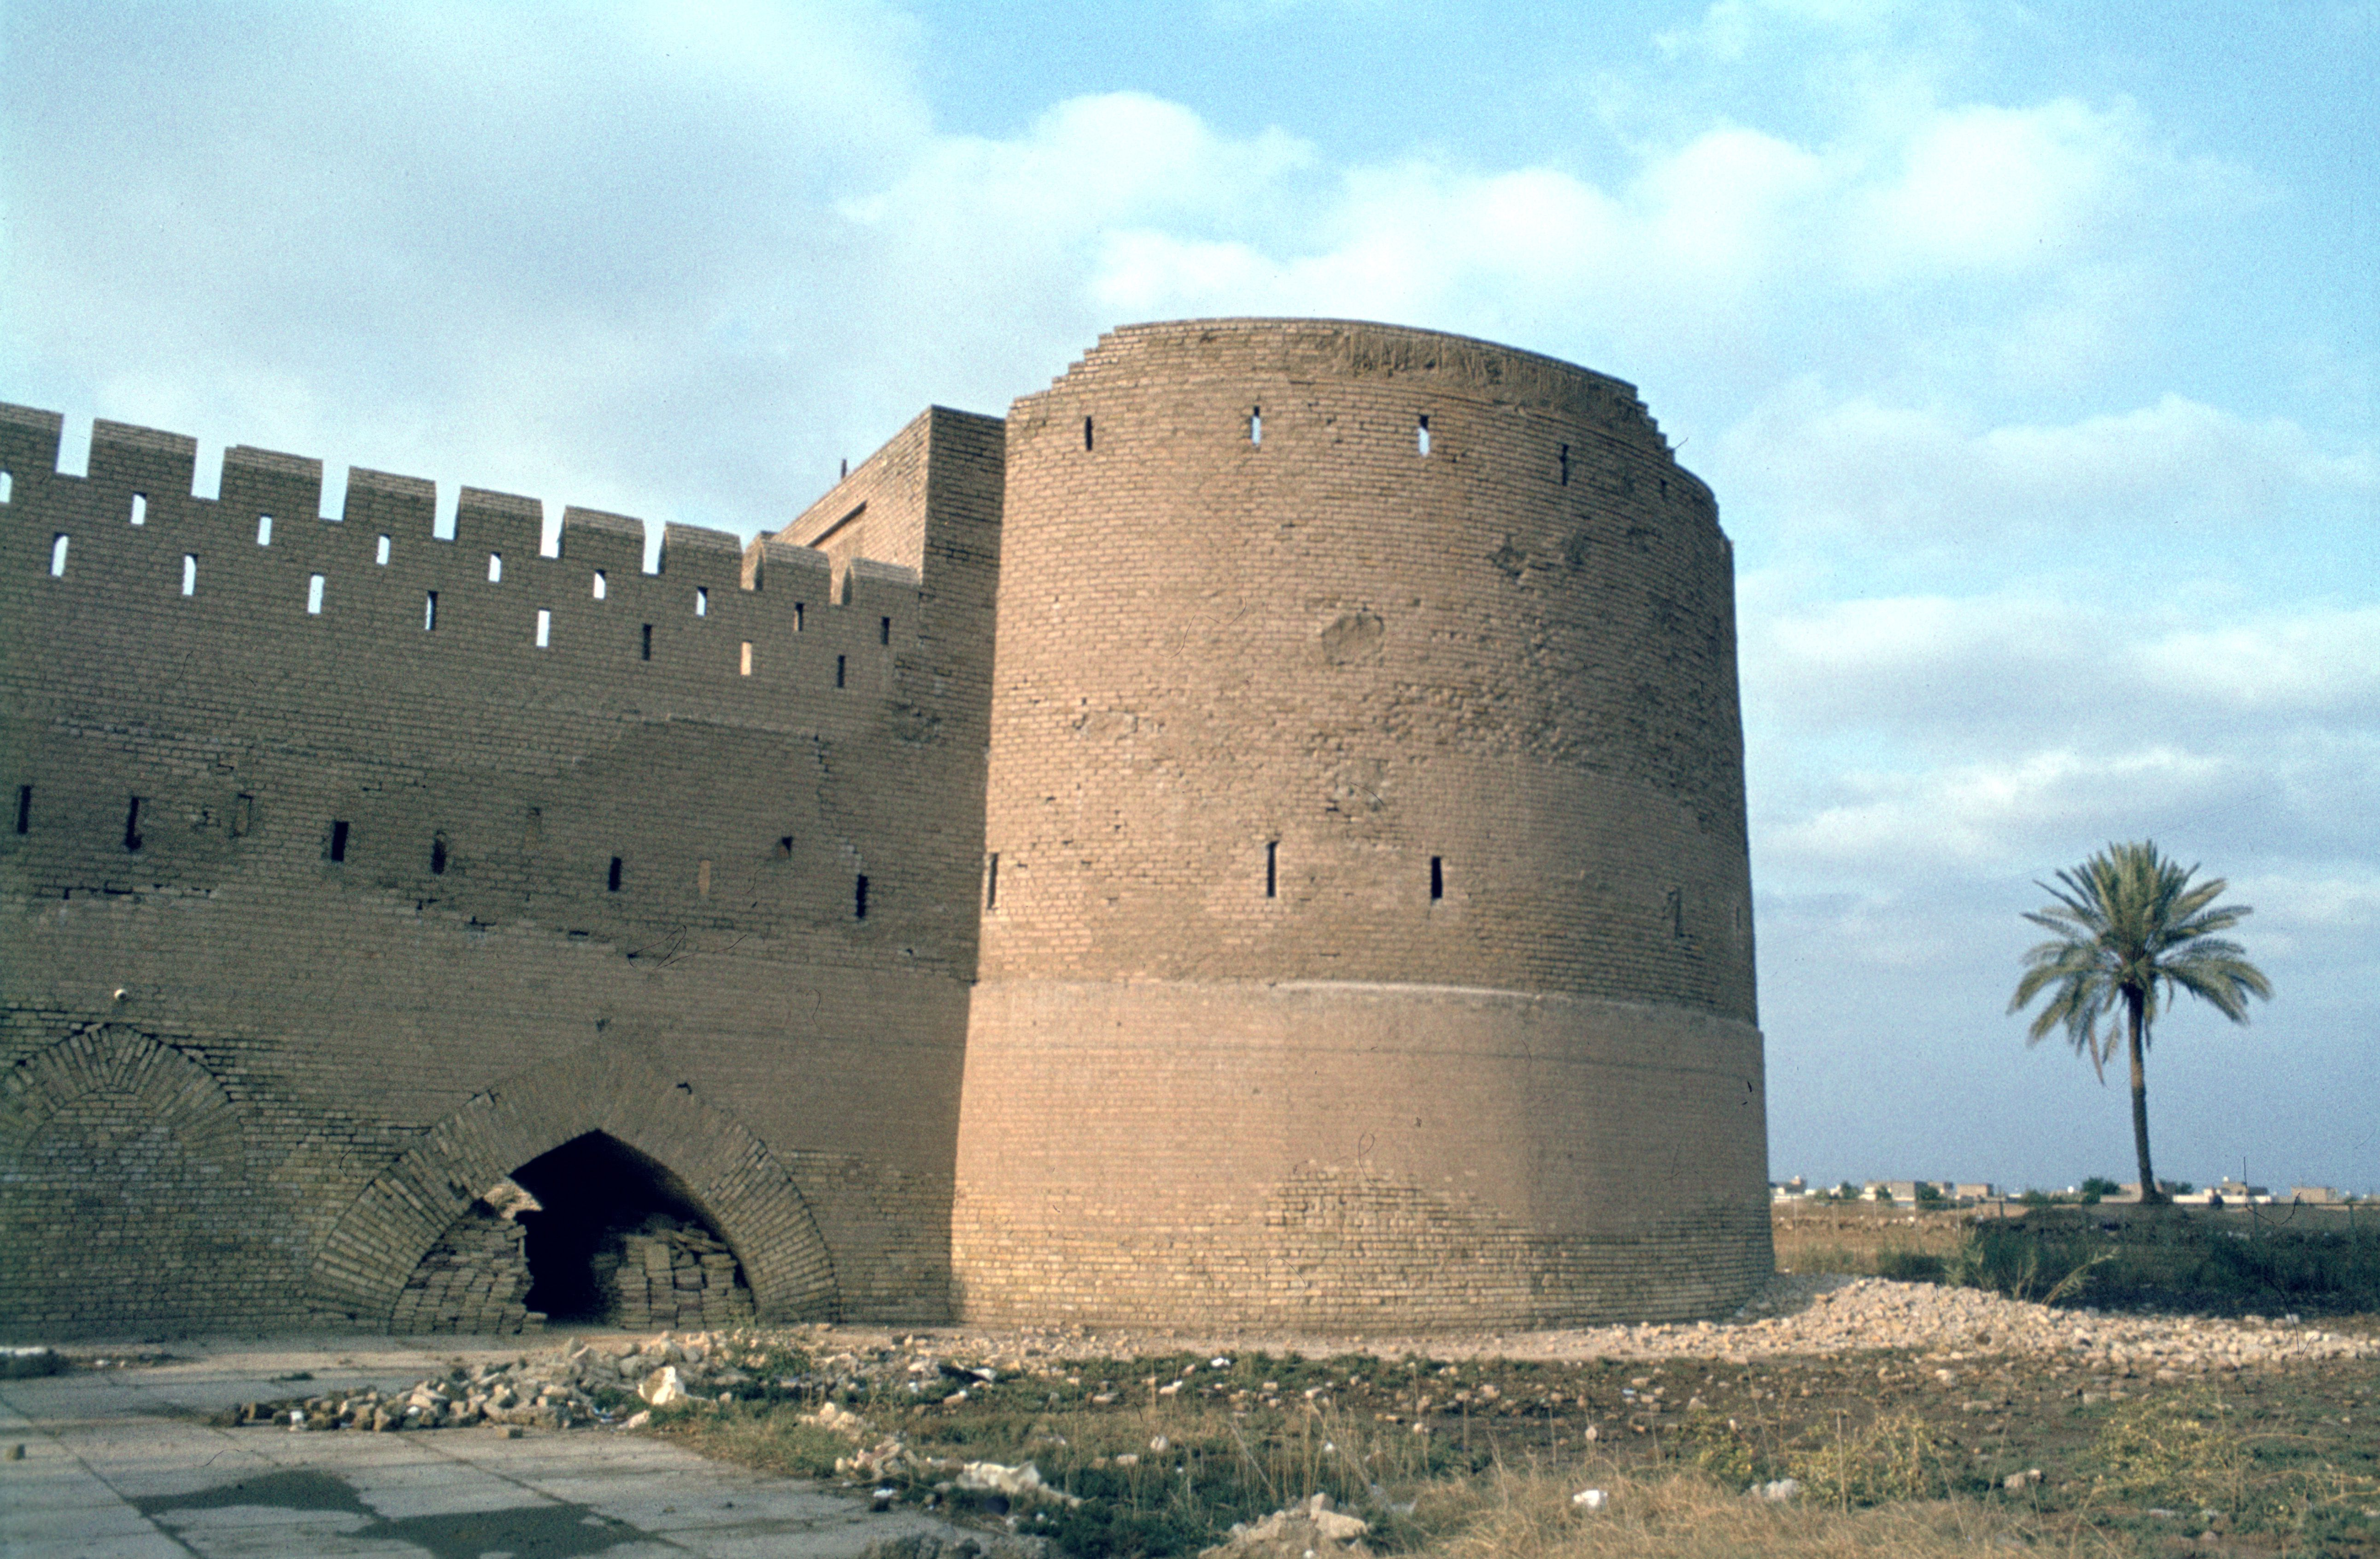 old fortification near palm tree in Iraq